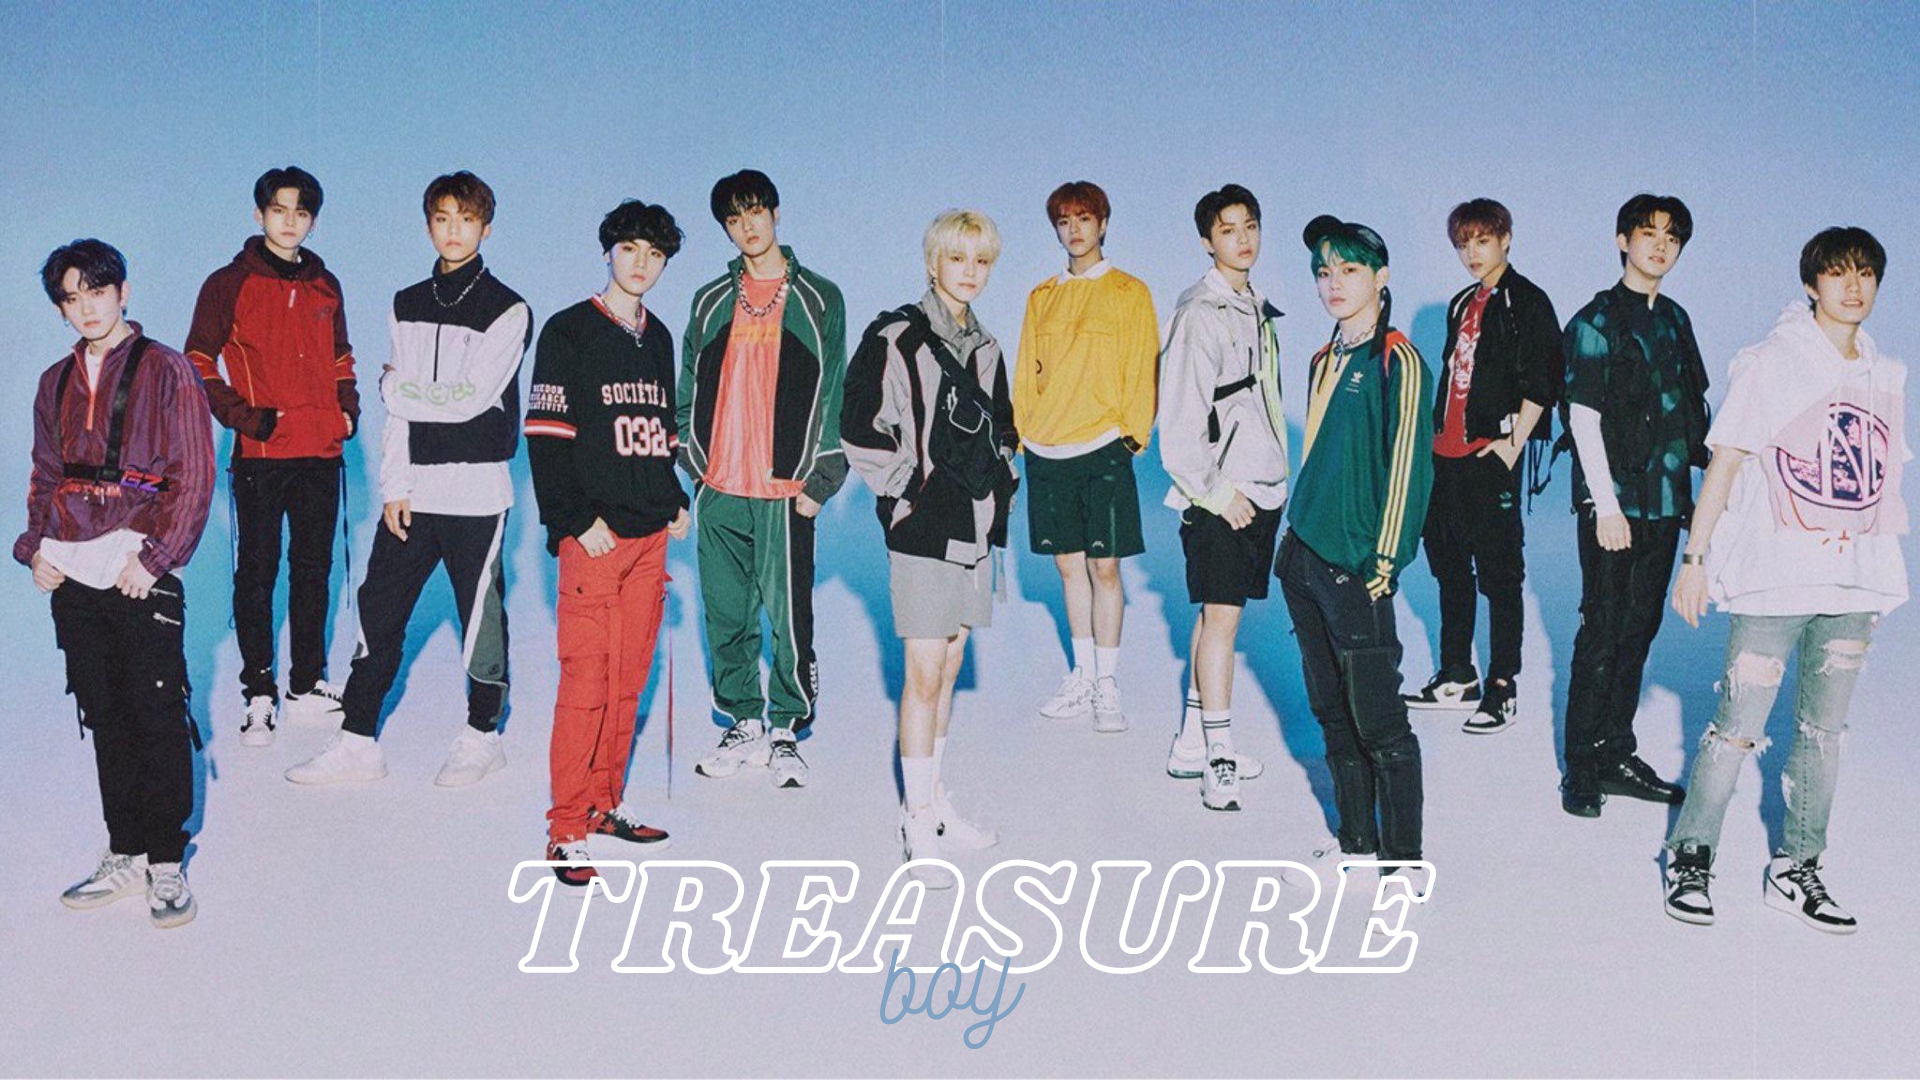 kpop yg treasure boy laptop or desktop wallpaper aesthetic | Kursus  fotografi, Lucu, Artis